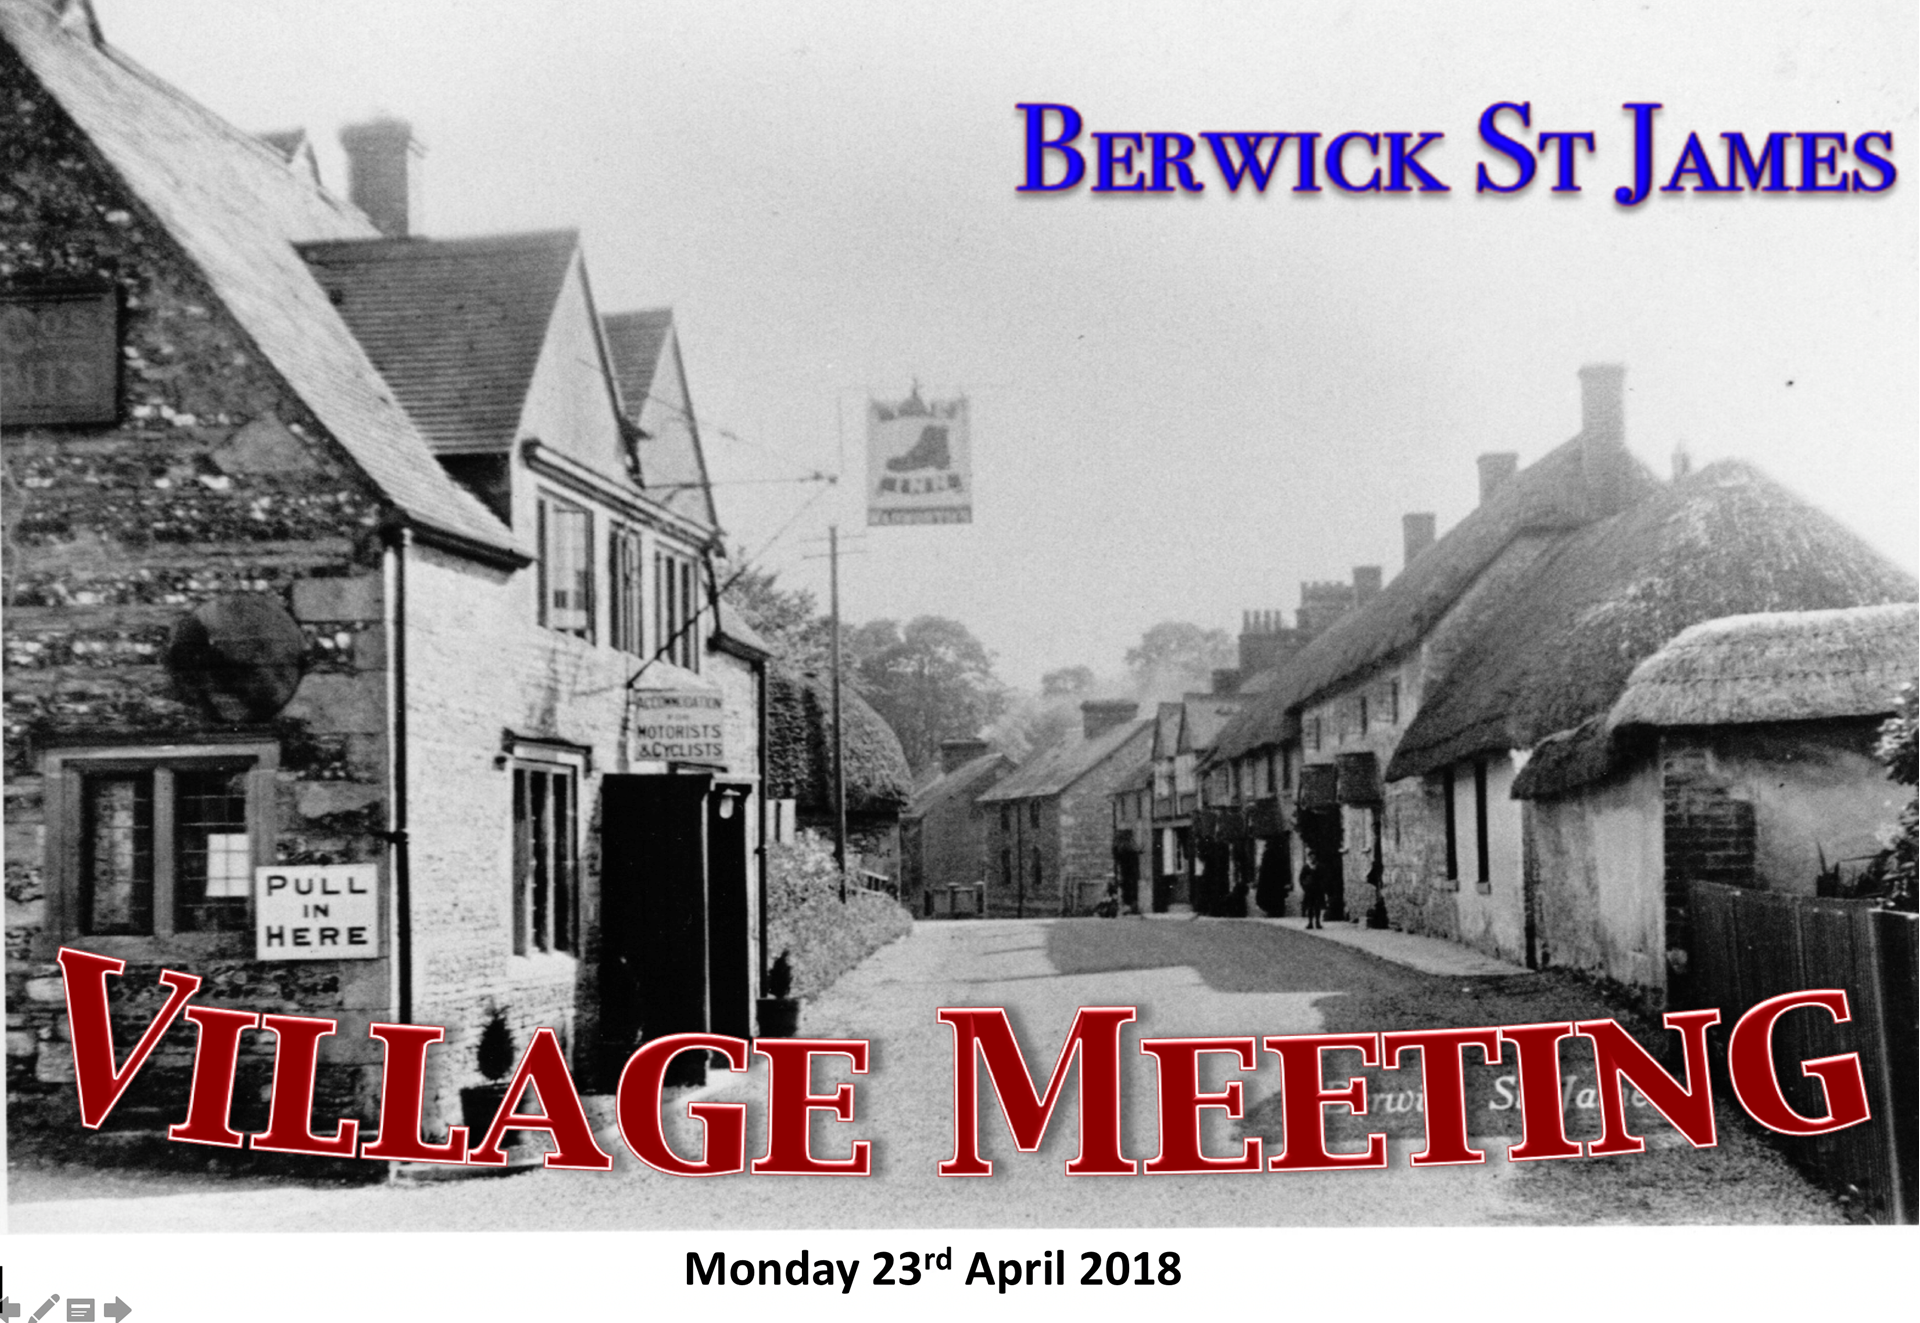 Berwick St James Parish Village Meeting - 23 April 2018